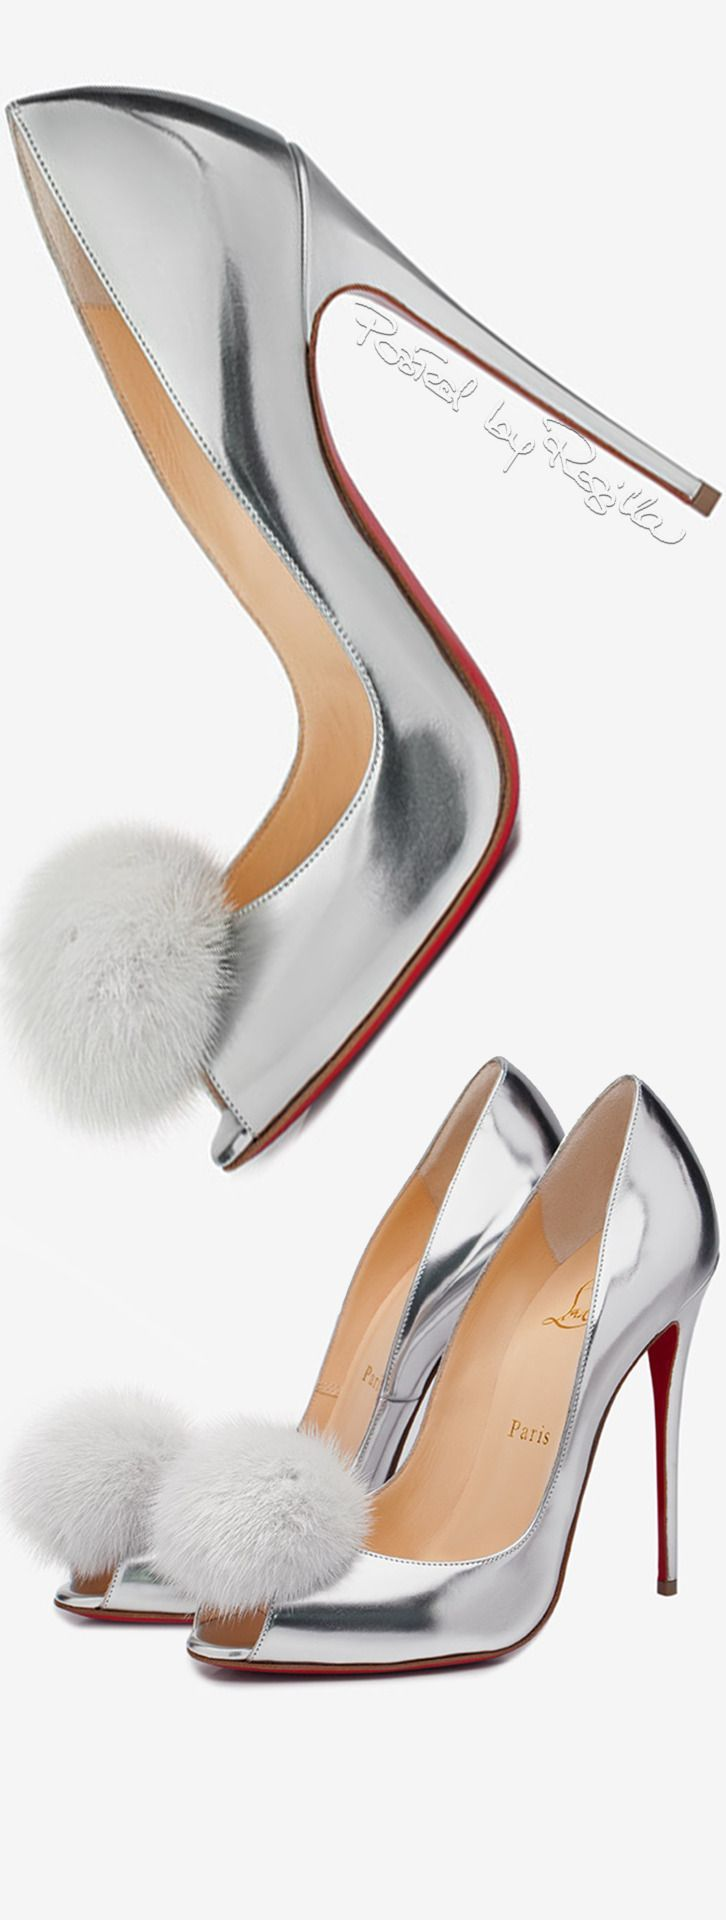 4e093068311 louboutin red sole repair uk christian louboutin red bottoms ...